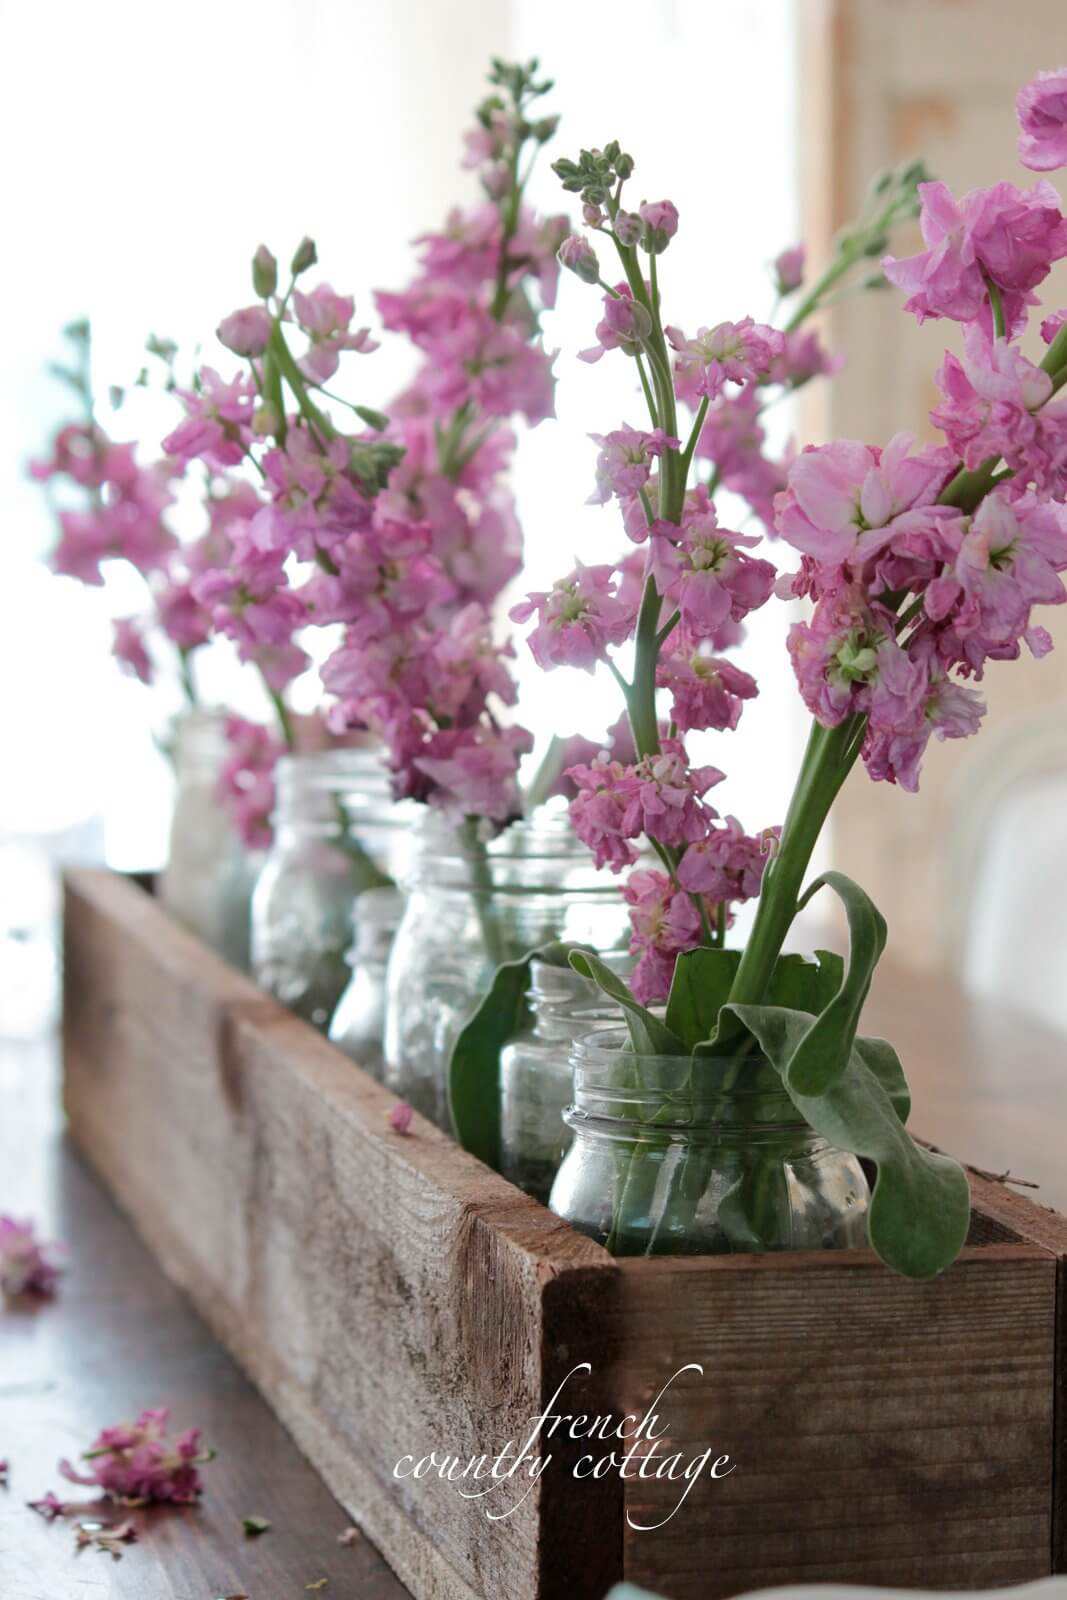 A Basic Floral Rustic Wooden Box Centerpiece